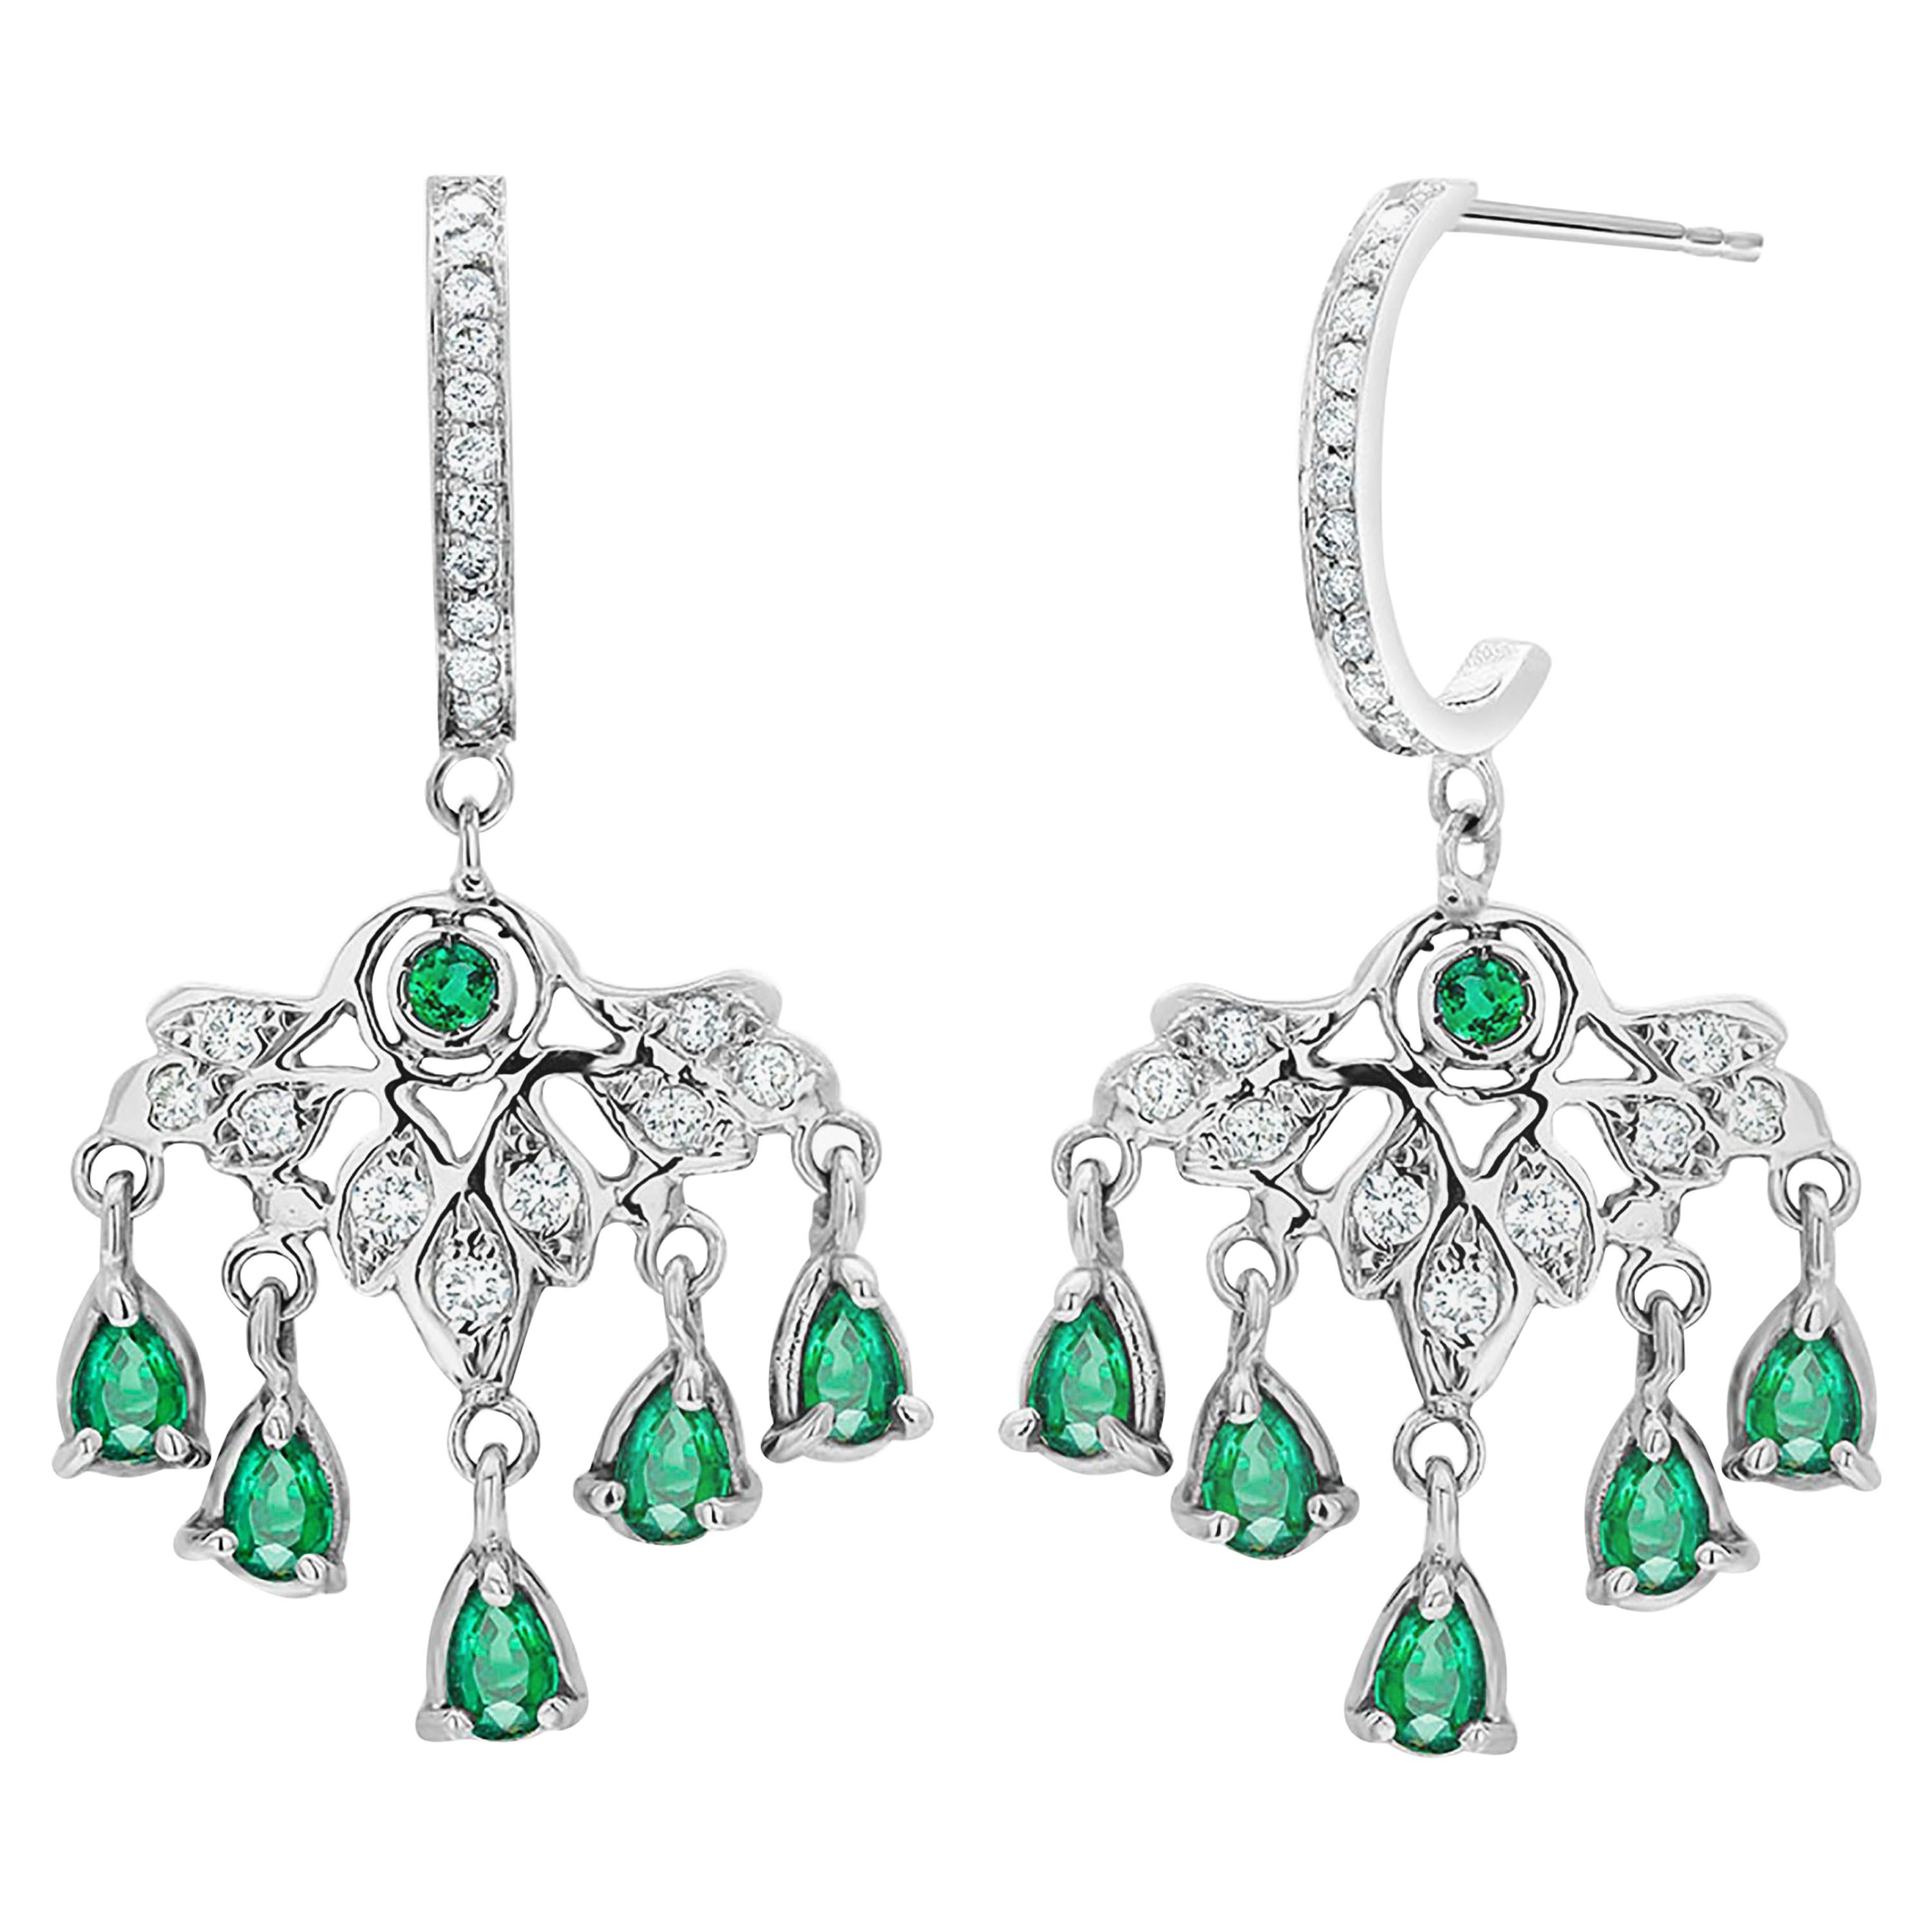 Pear Shape Dangle Emerald and Diamond Gold Hoop Earrings Weighing 4.85 Carat